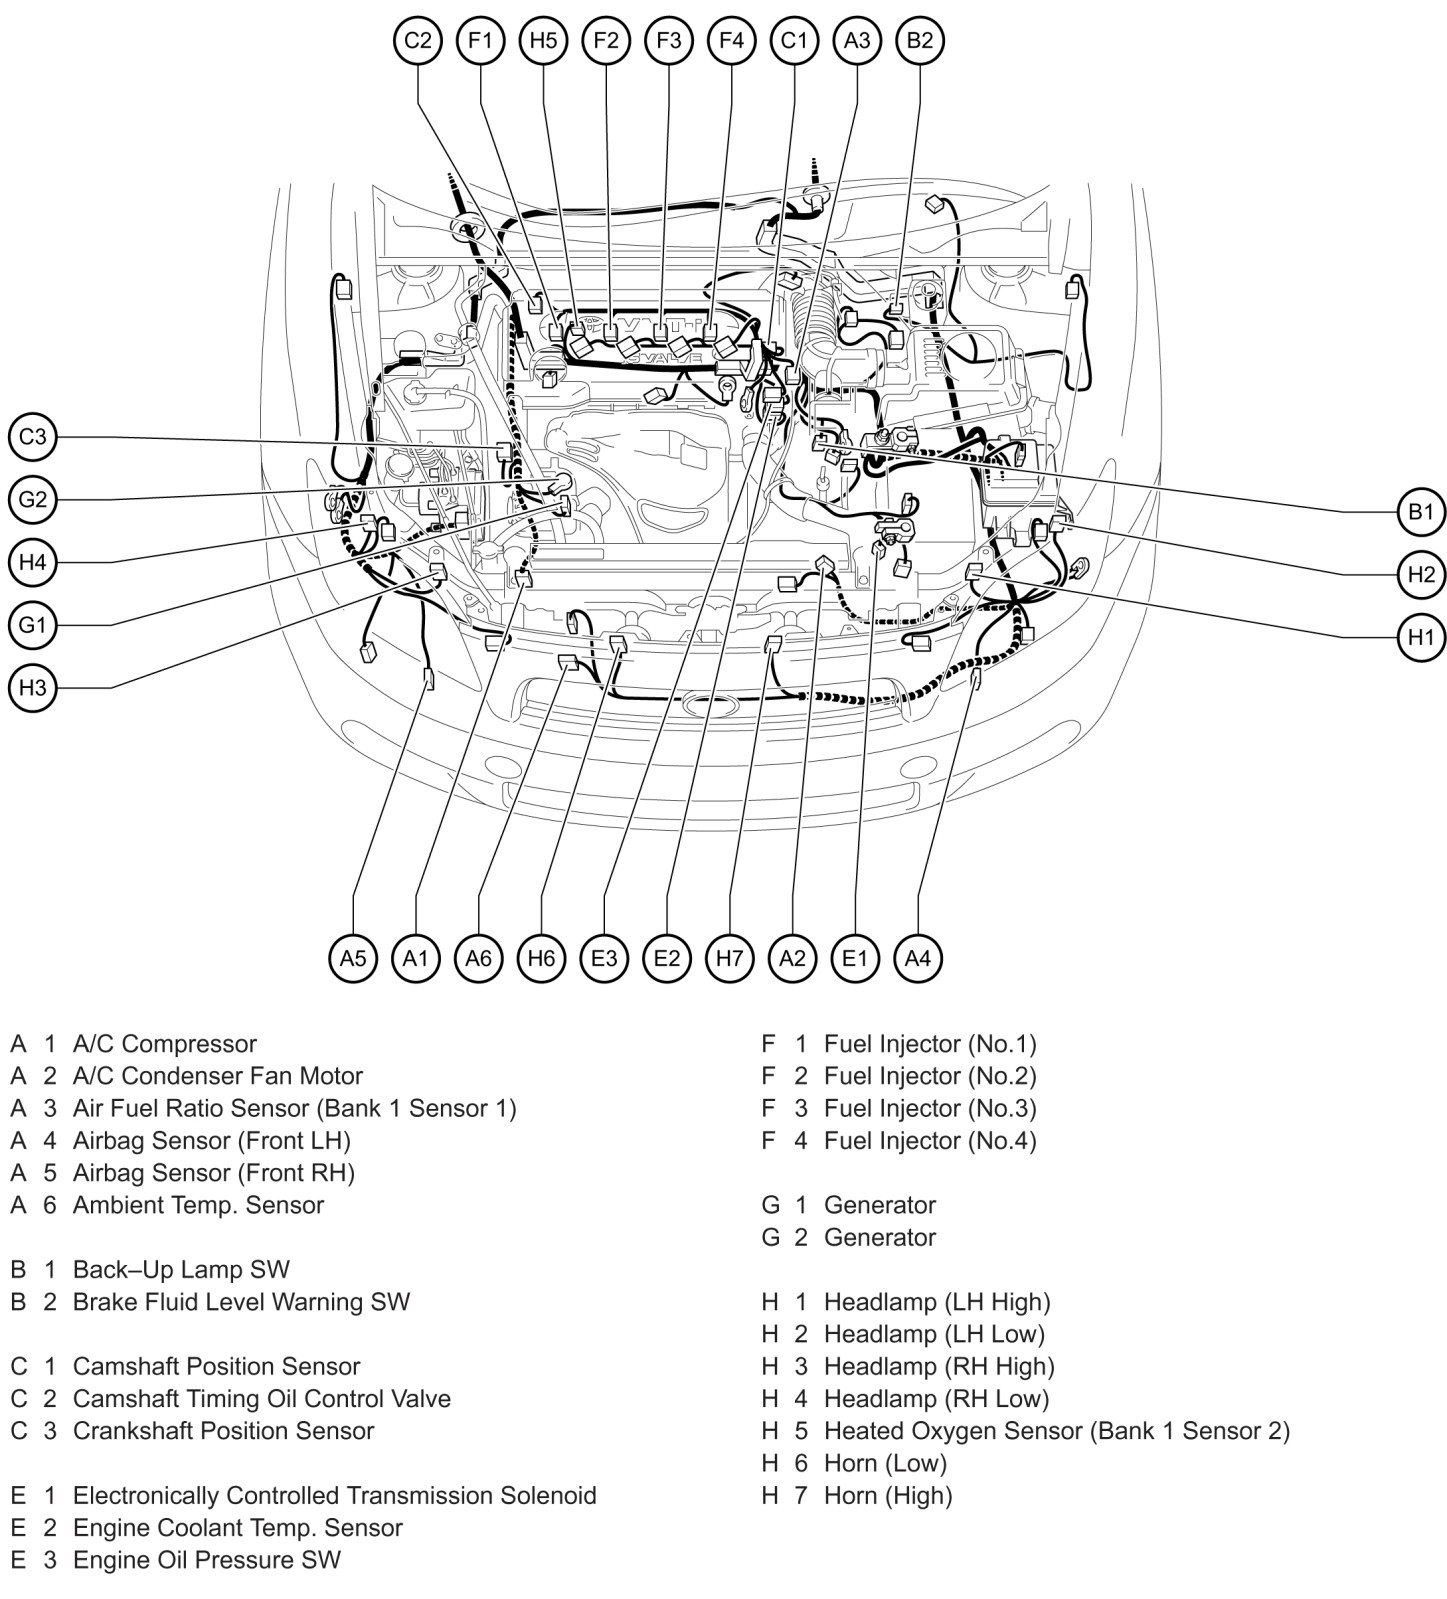 Scion xa engine diagram 2006 scion tc wiring diagram wiring diagrams of scion xa engine diagram